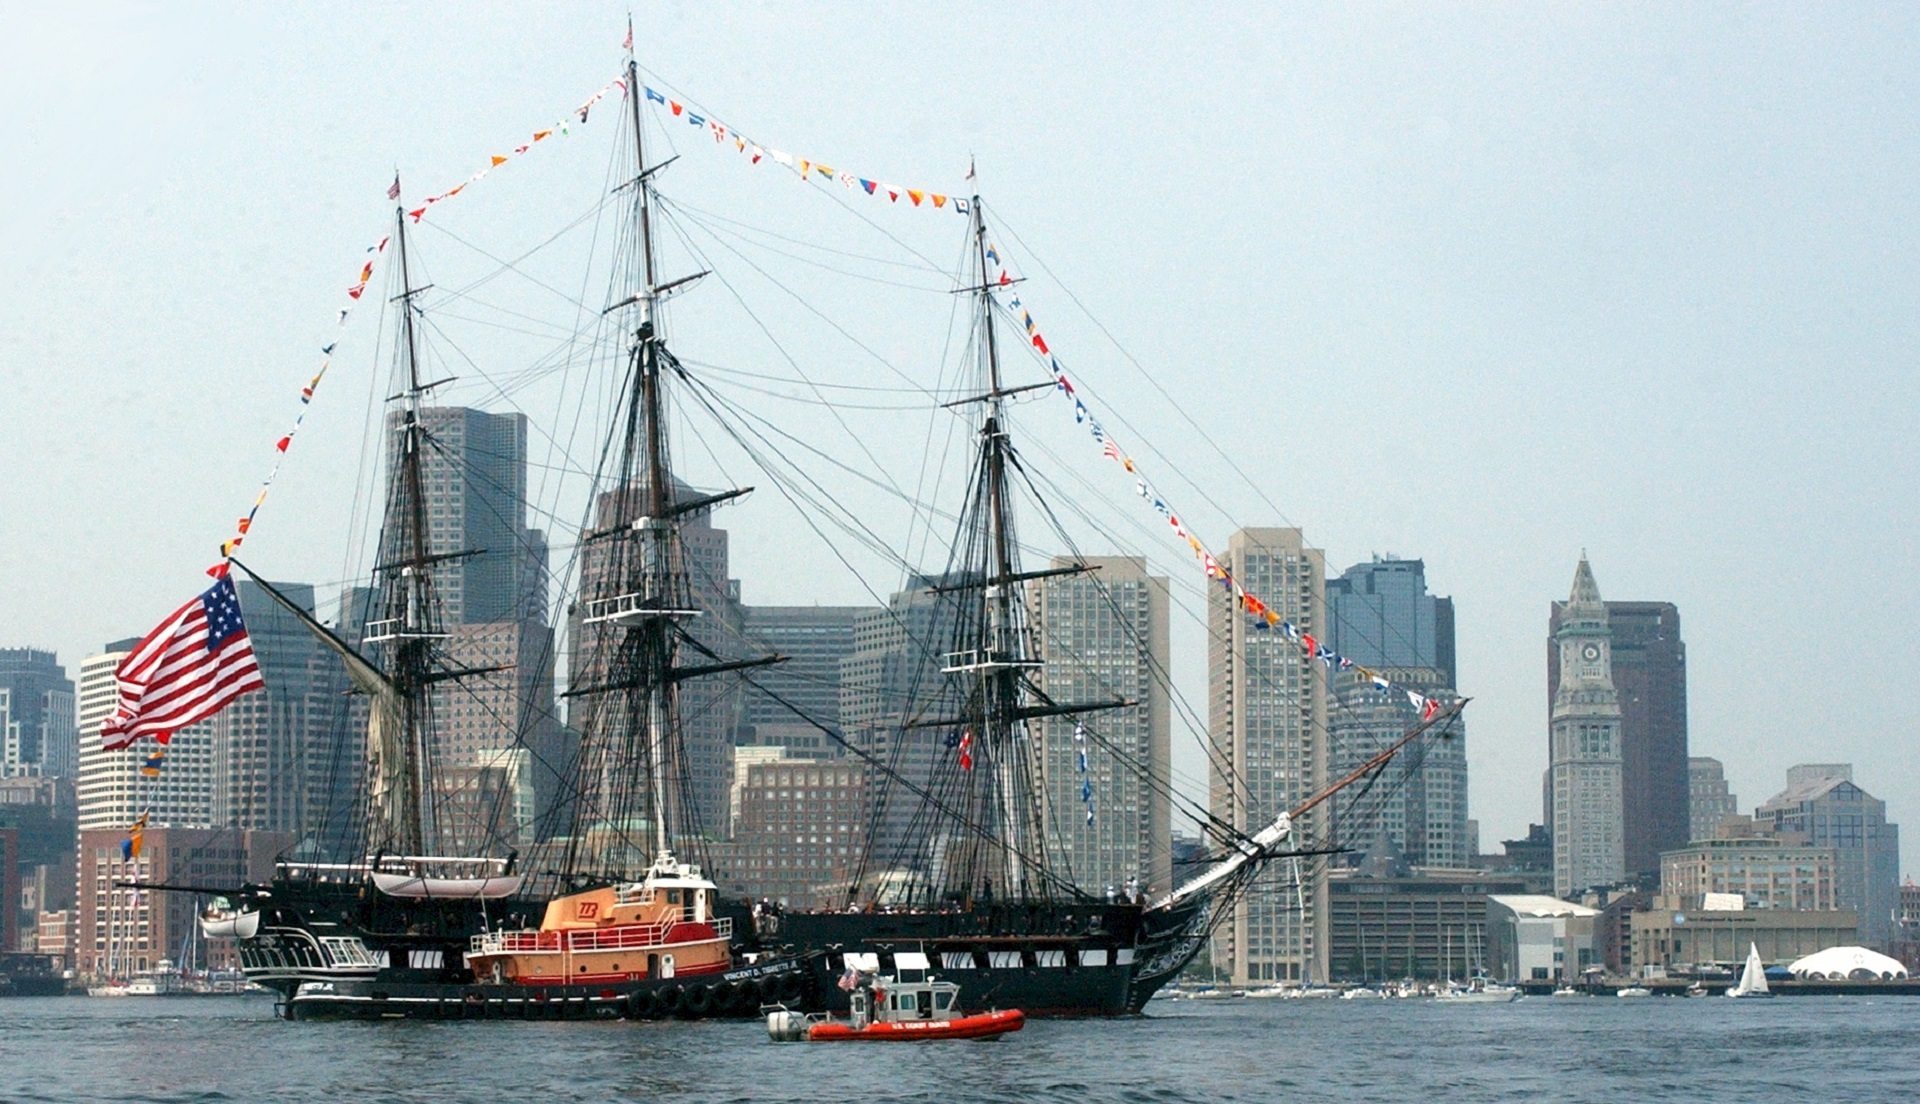 Boston - USS Constitution